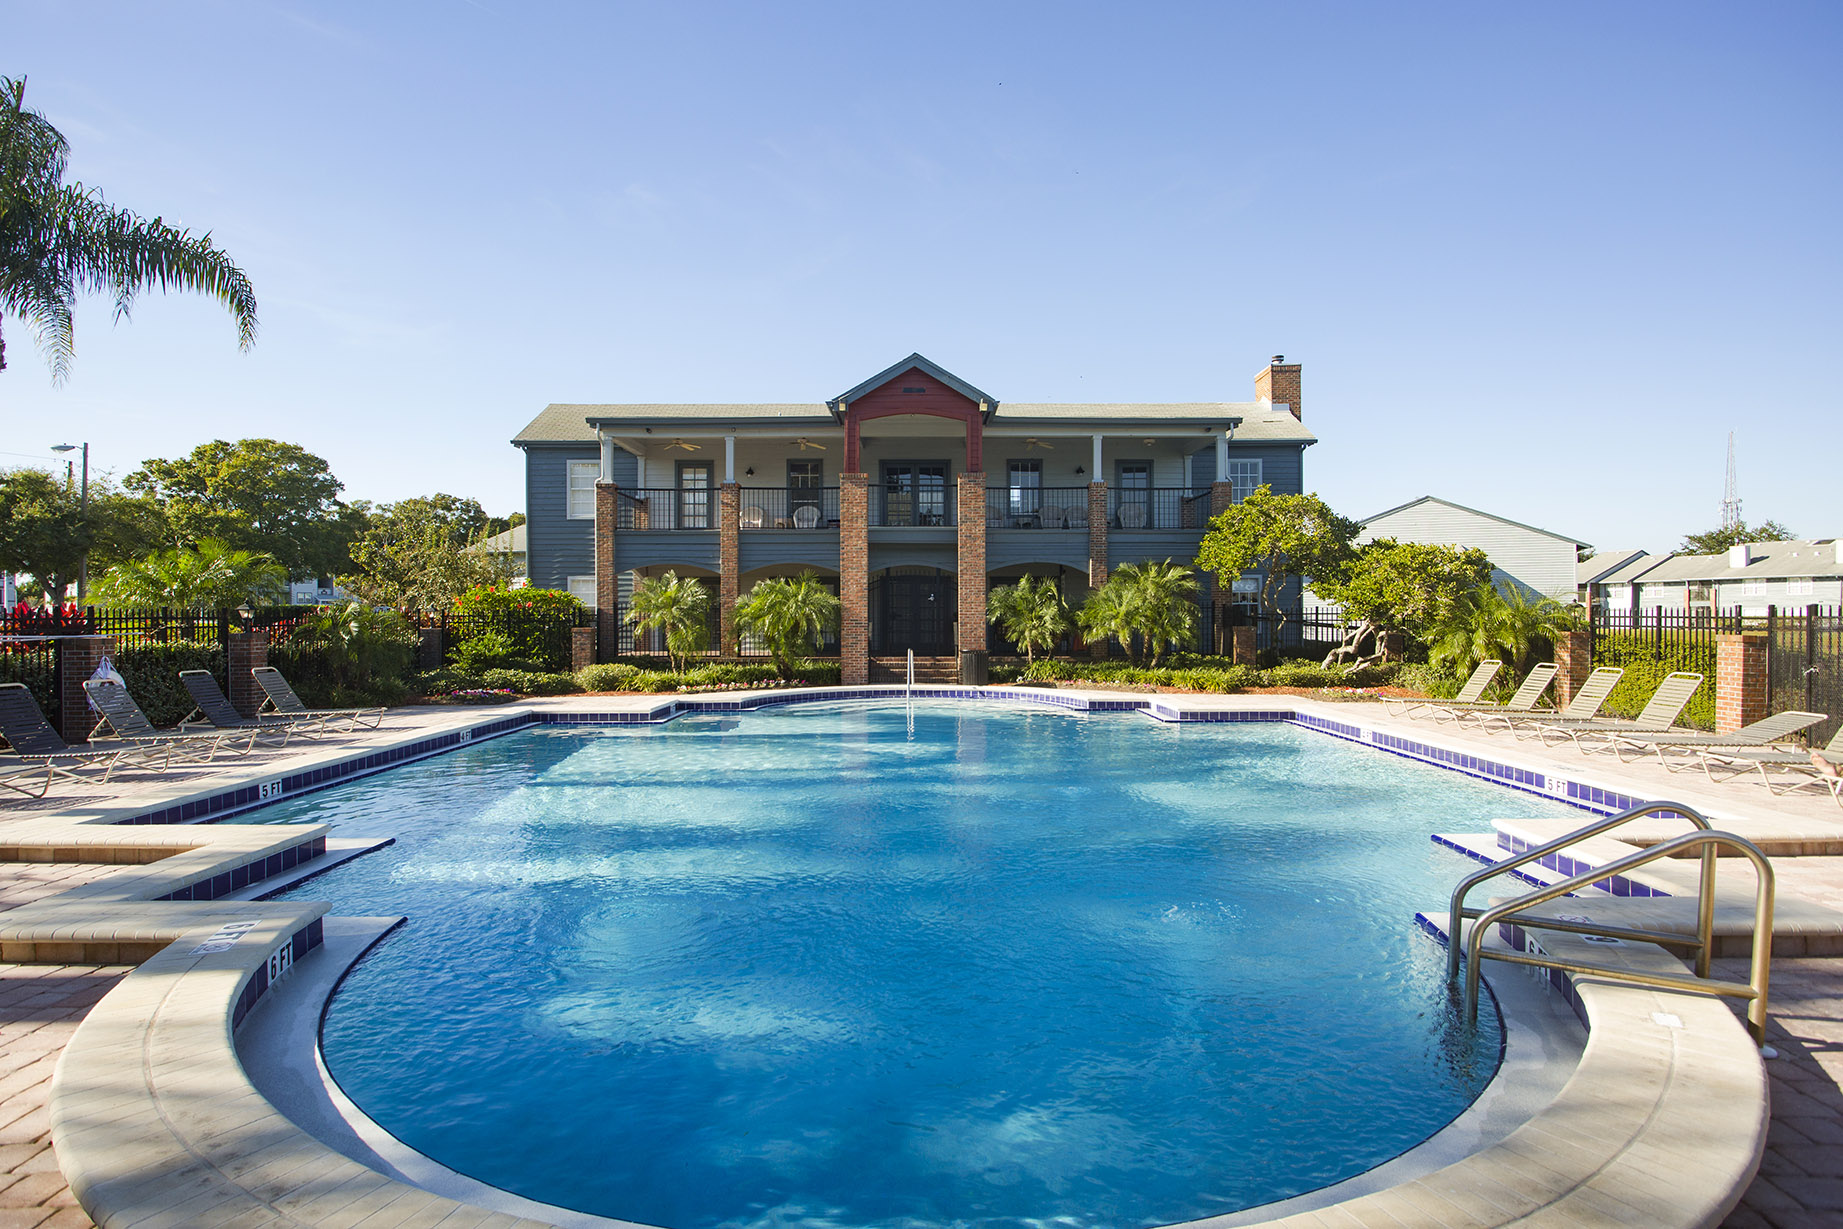 CharlestonLandings-Rental-Apartment-Brandon-Tampa-Florida-Pool2.jpg